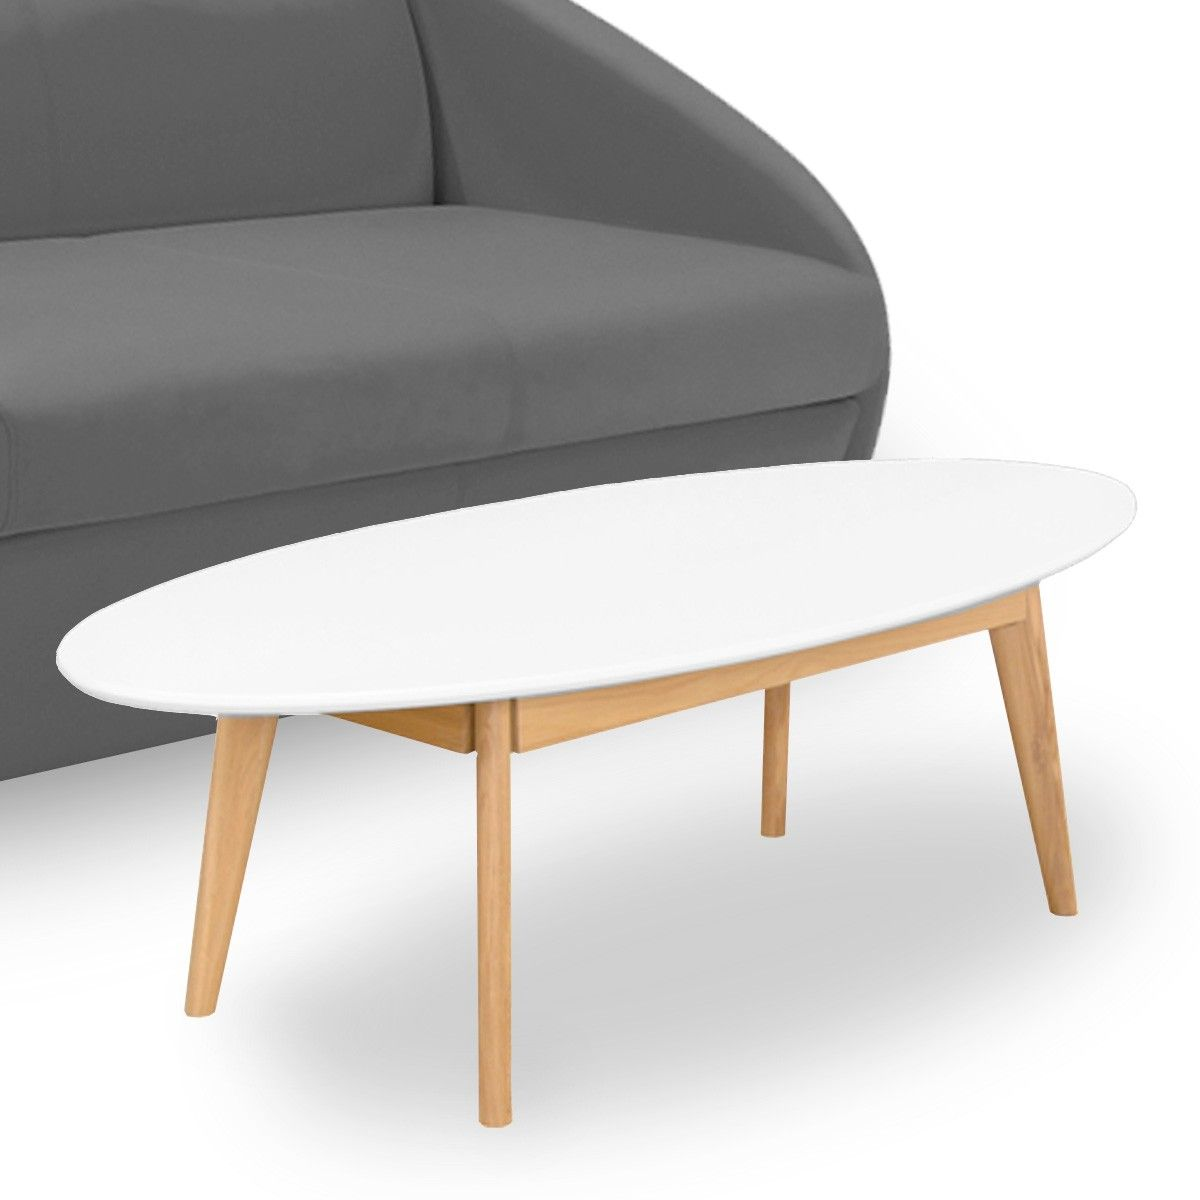 La table basse parfaite pour votre salon rise and shine for Table basse scandinave la redoute